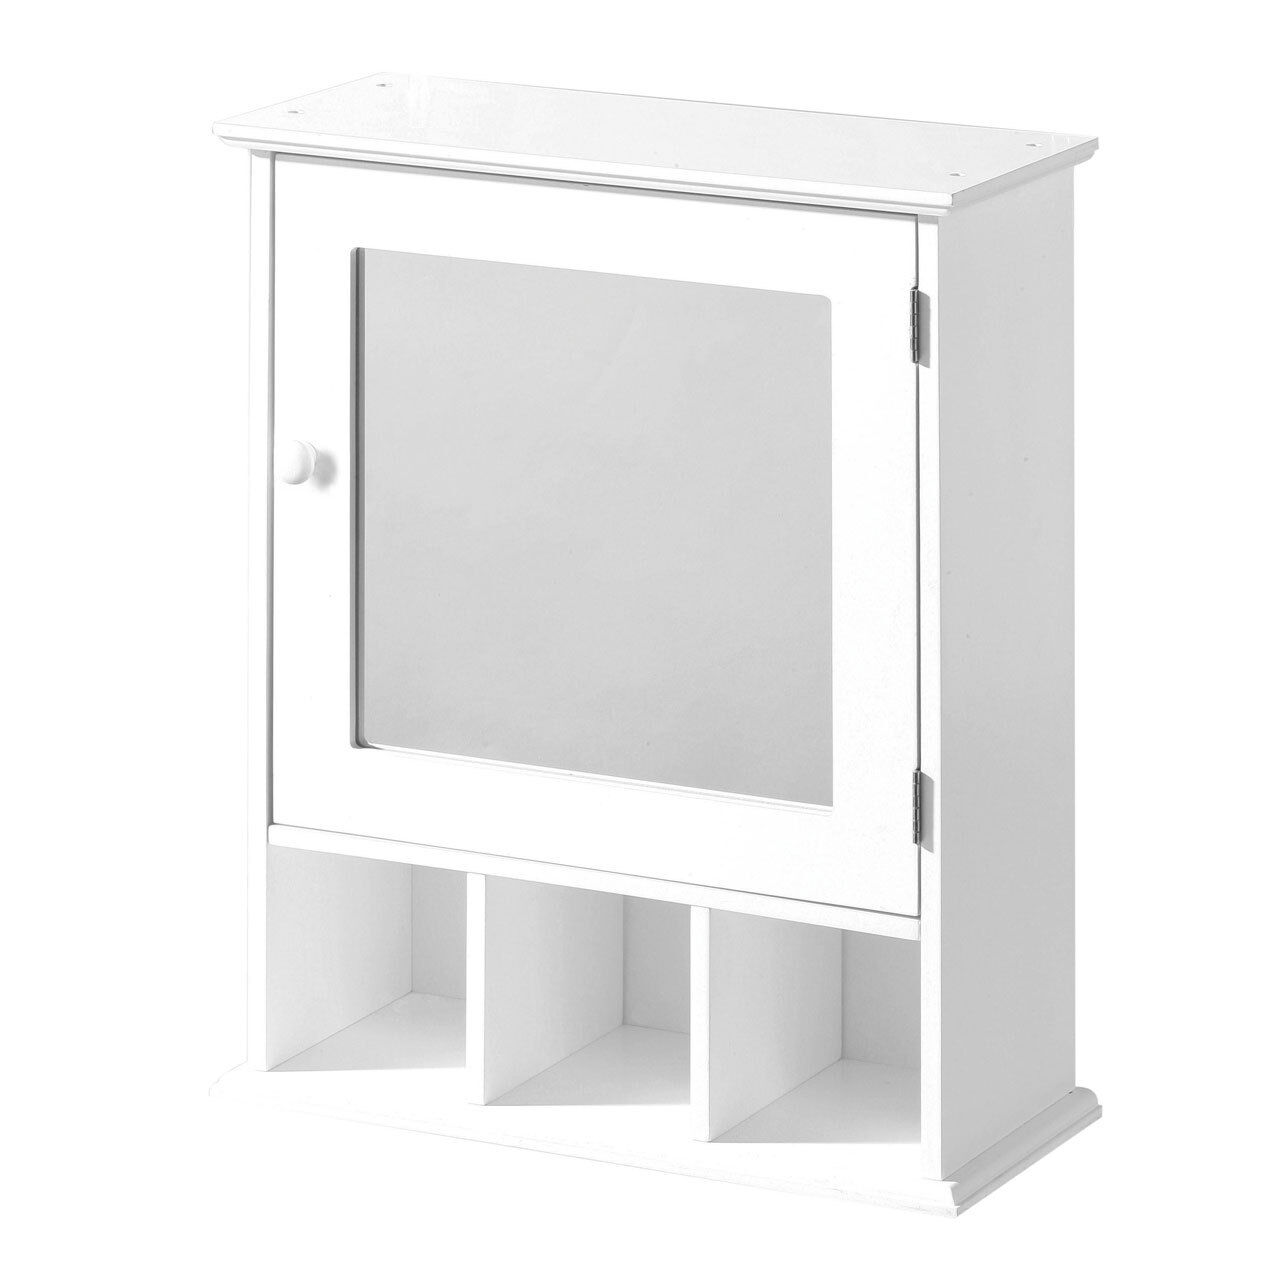 white wood wall mounted bathroom cabinet unit mirrored door with 3